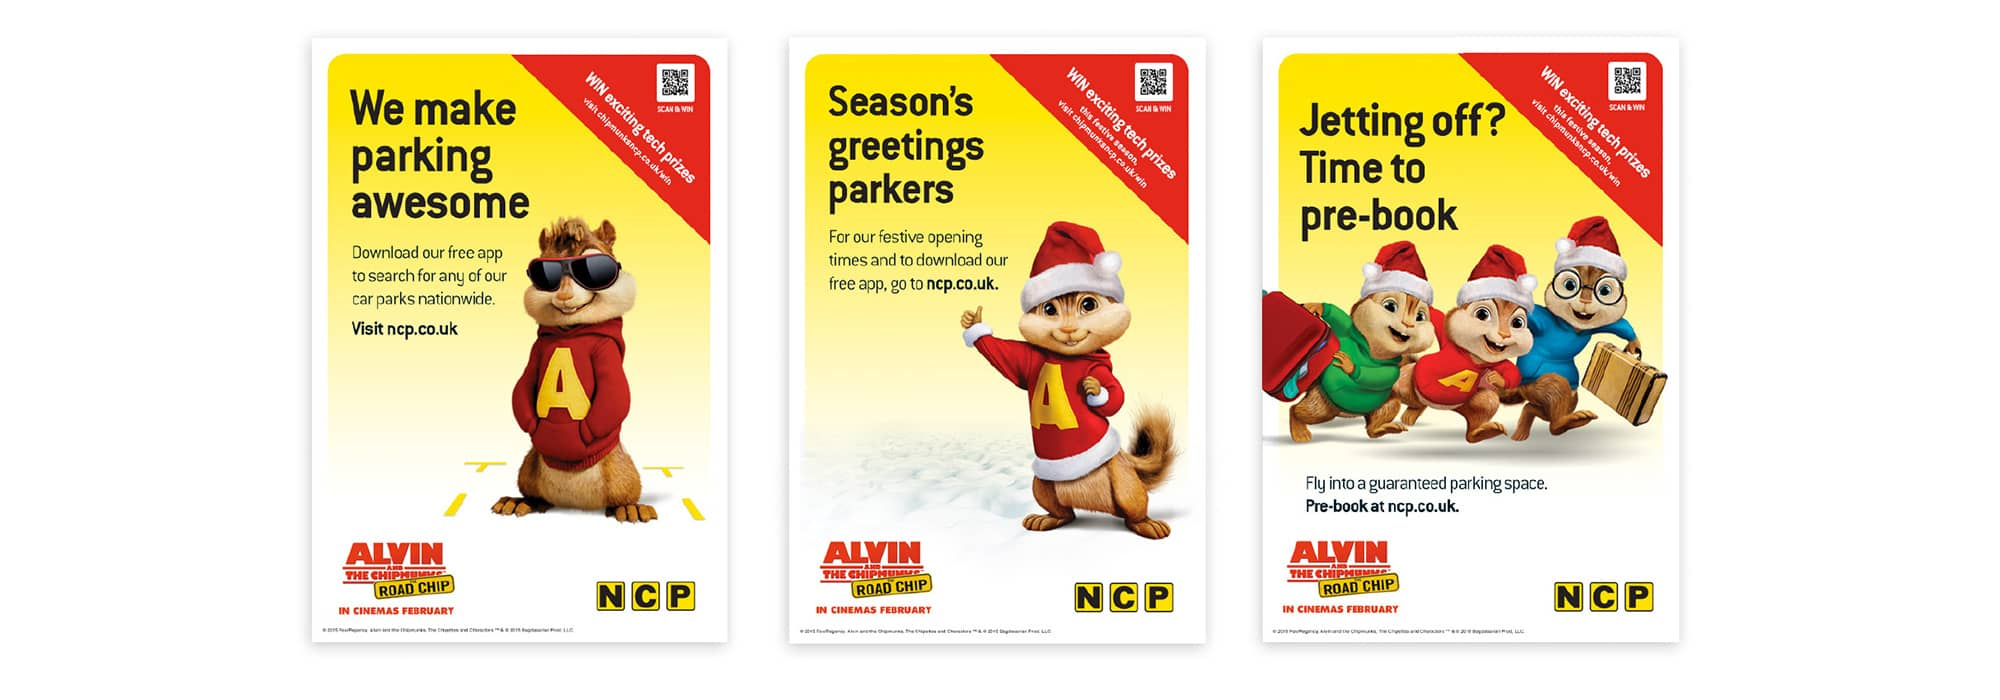 NCP Chipmunk marketing